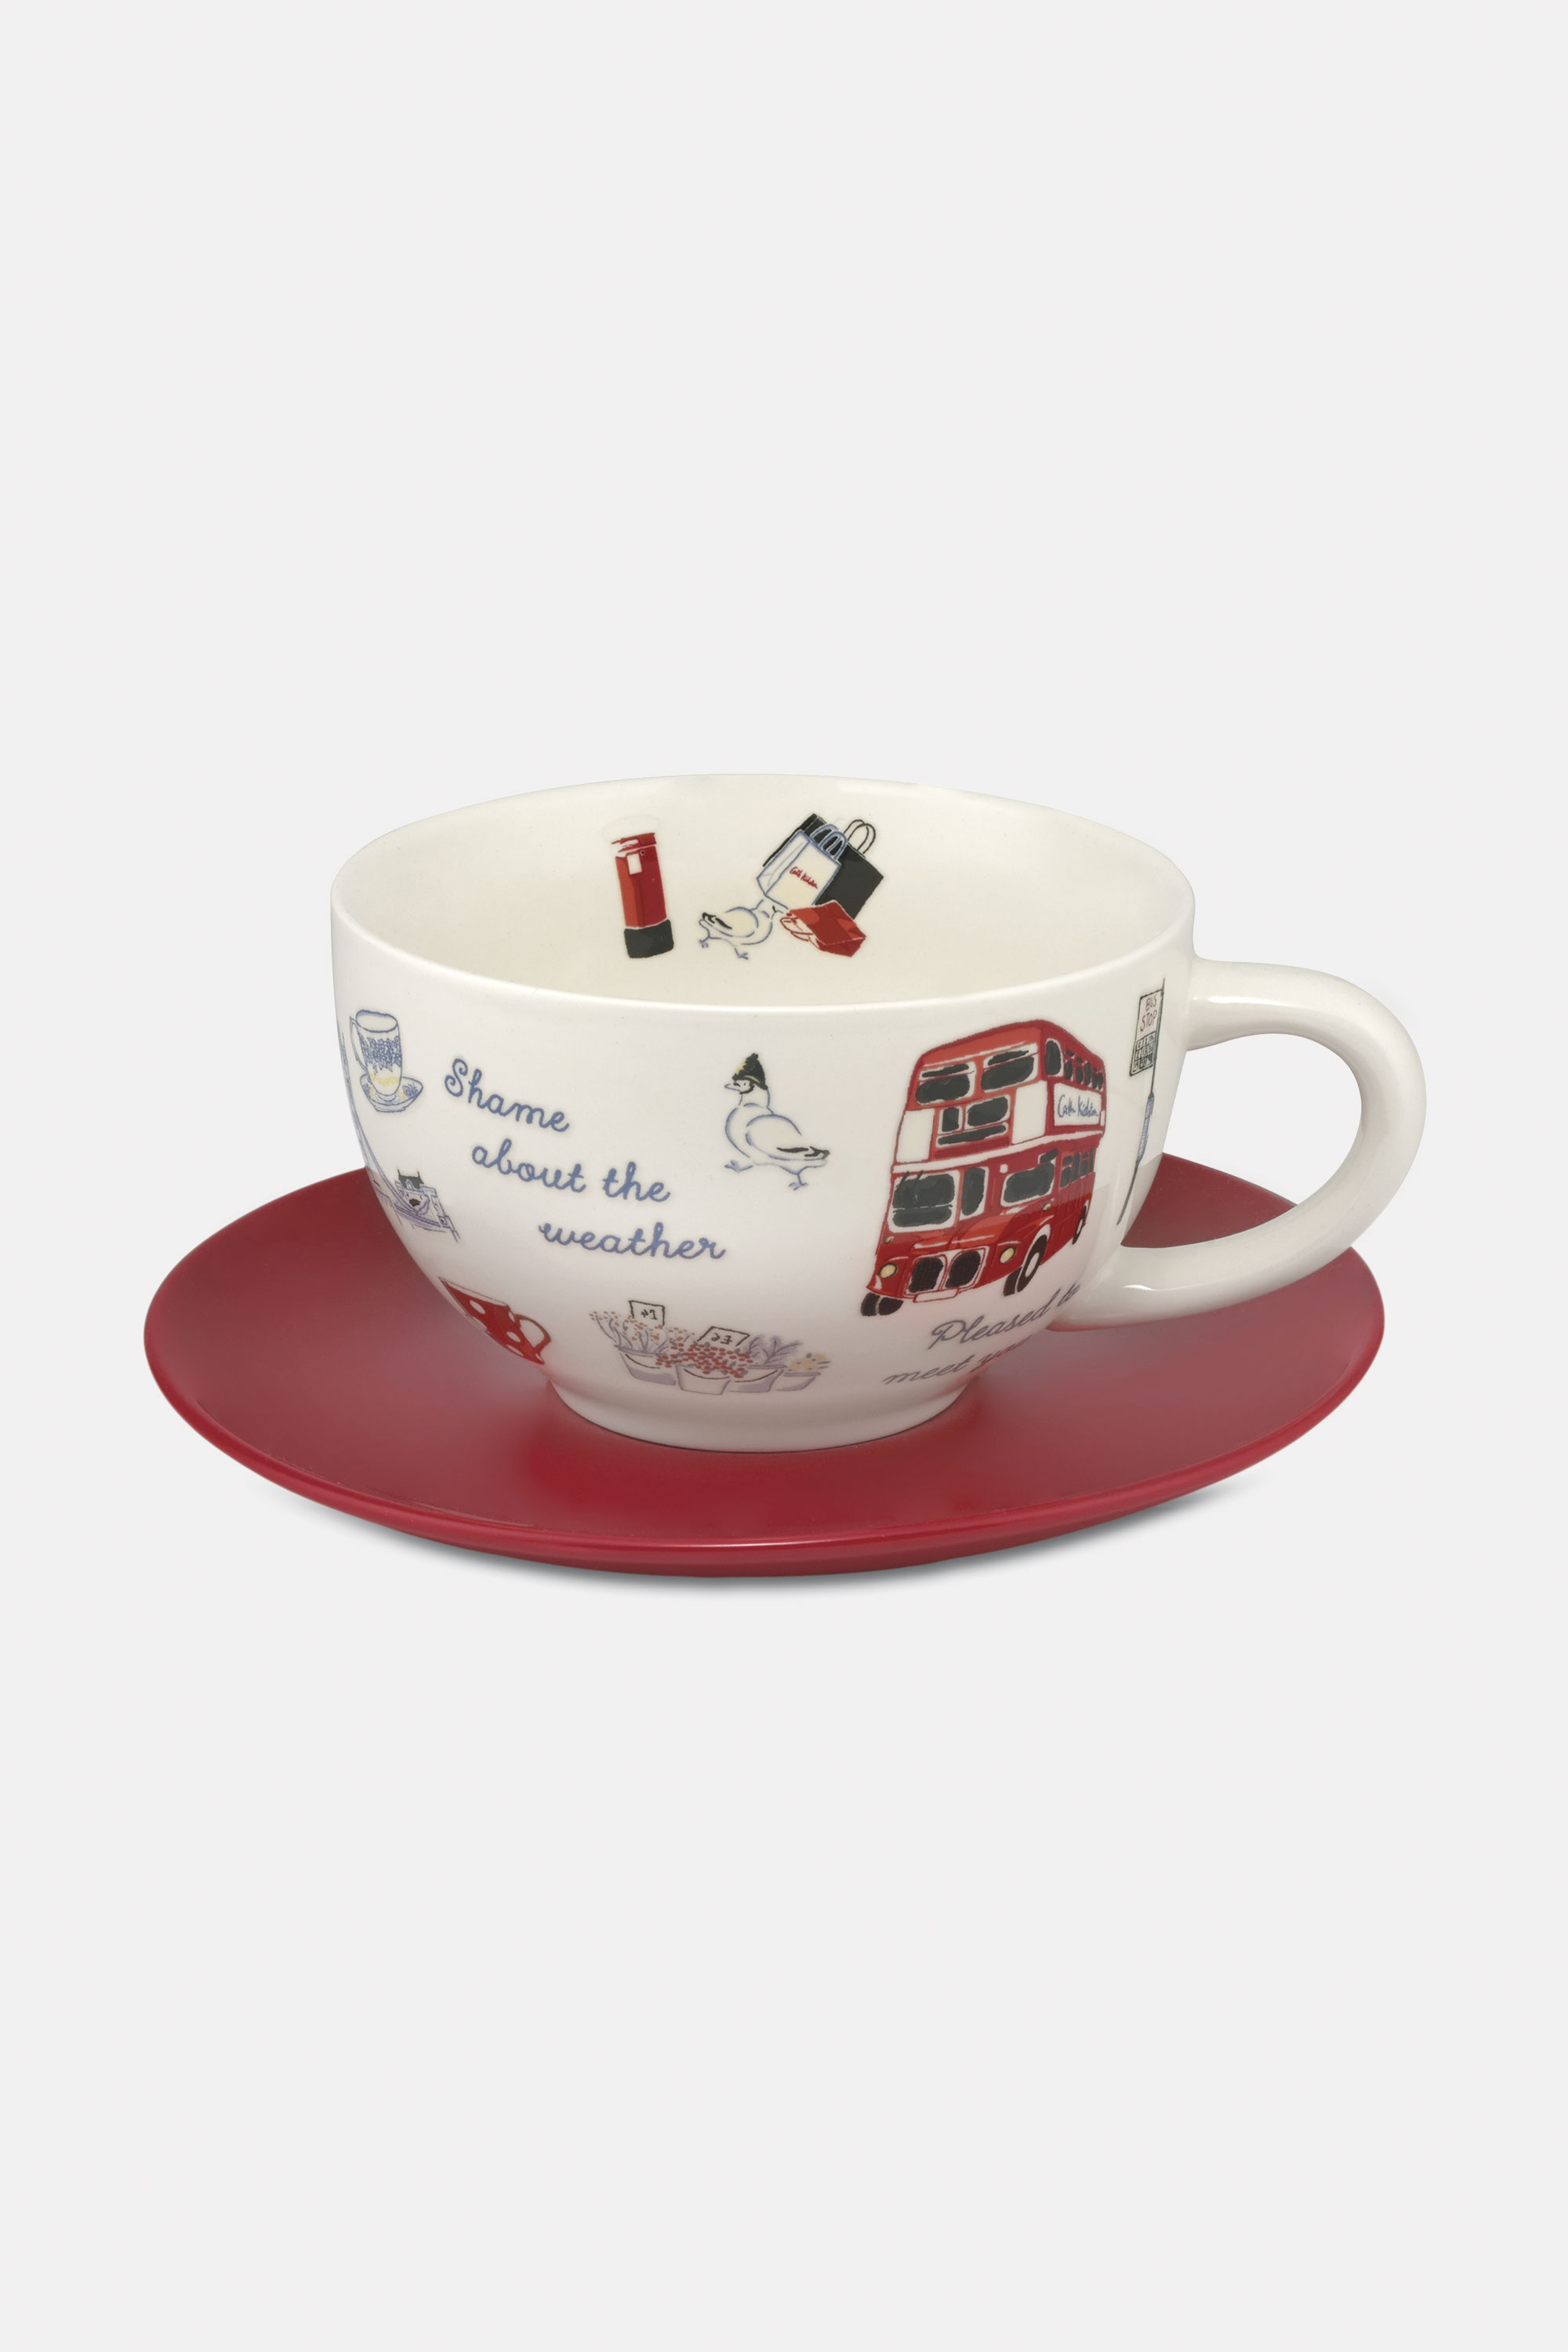 Cath Kidston Cup and Saucer in Light Blue, London Icons, 100% Stoneware